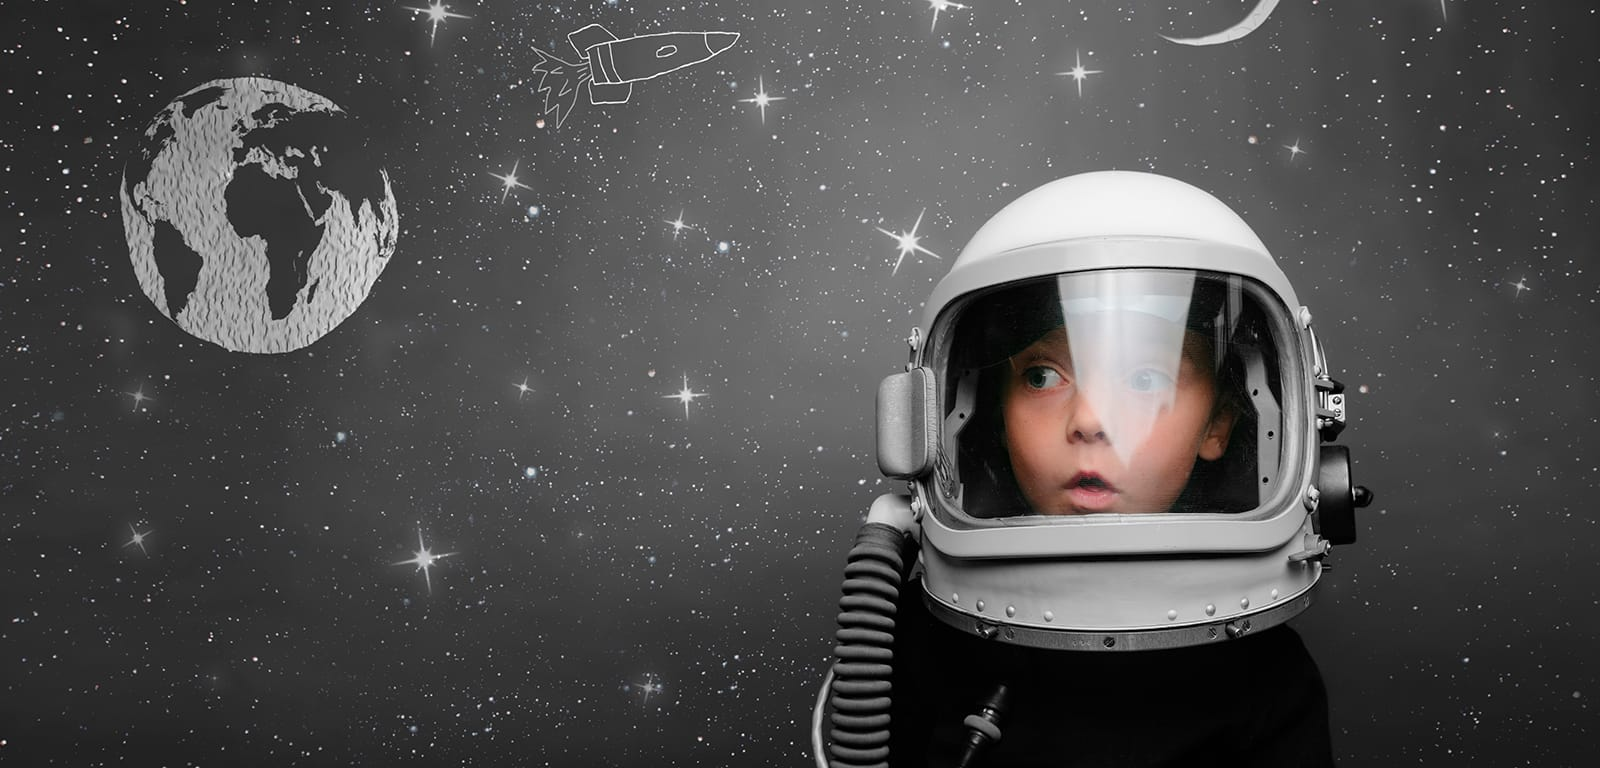 Child looking surprised in a retro styled space helmet